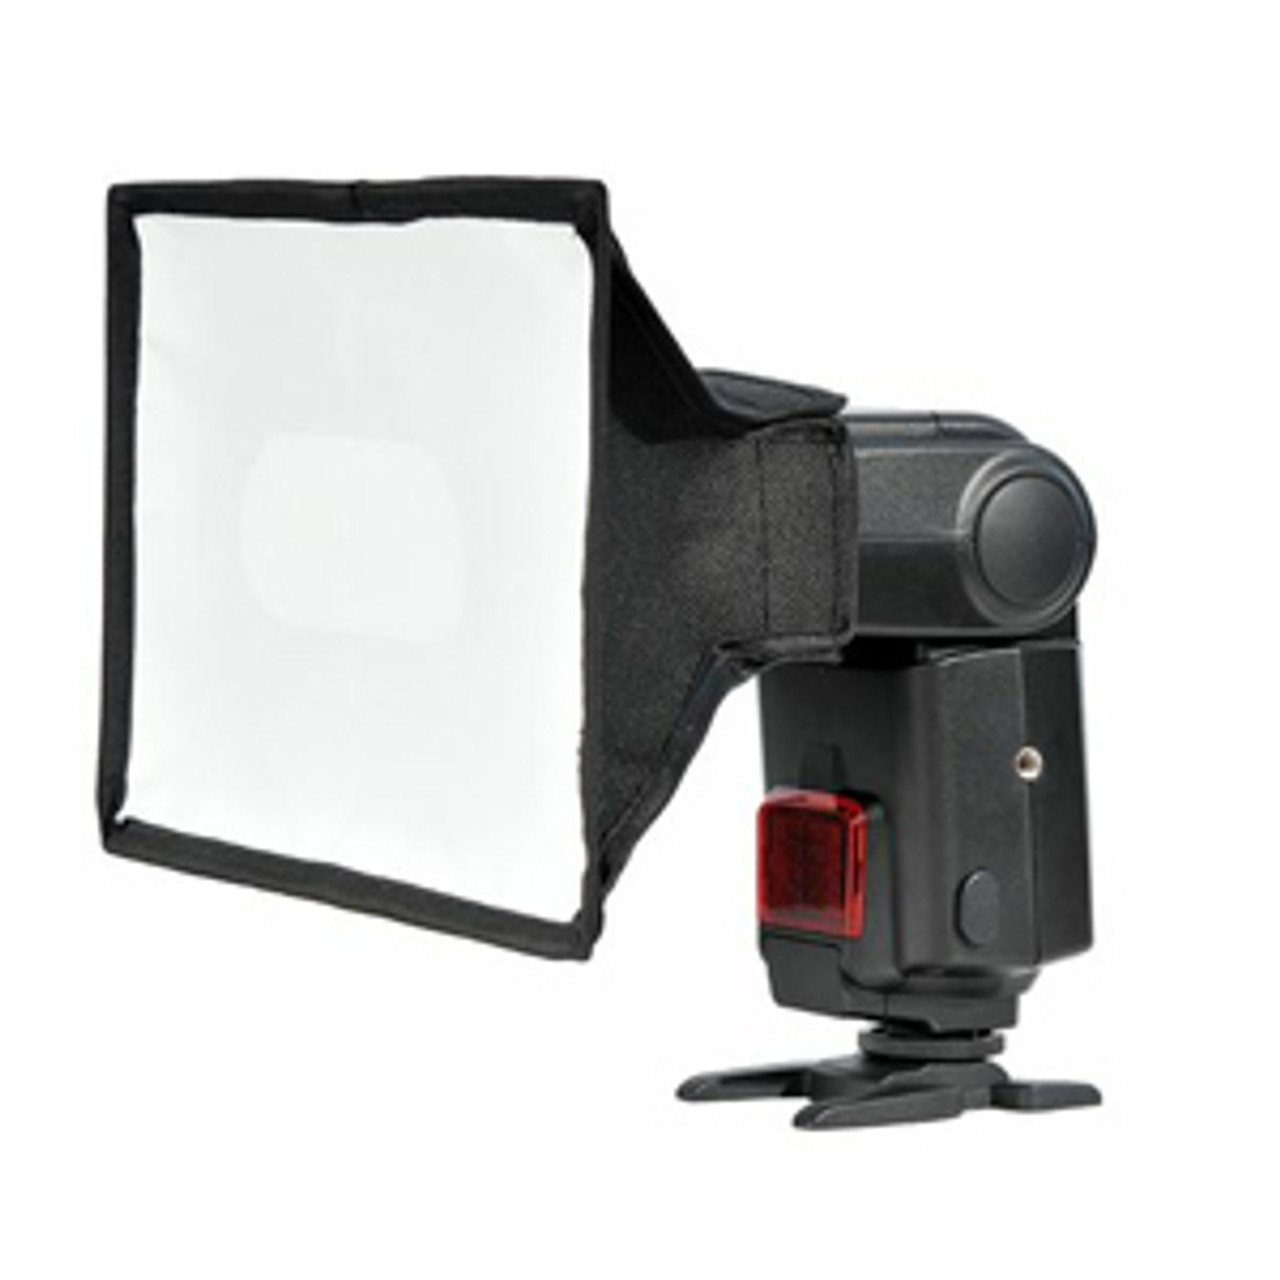 Godox SB1010 Softbox for Camera Flash